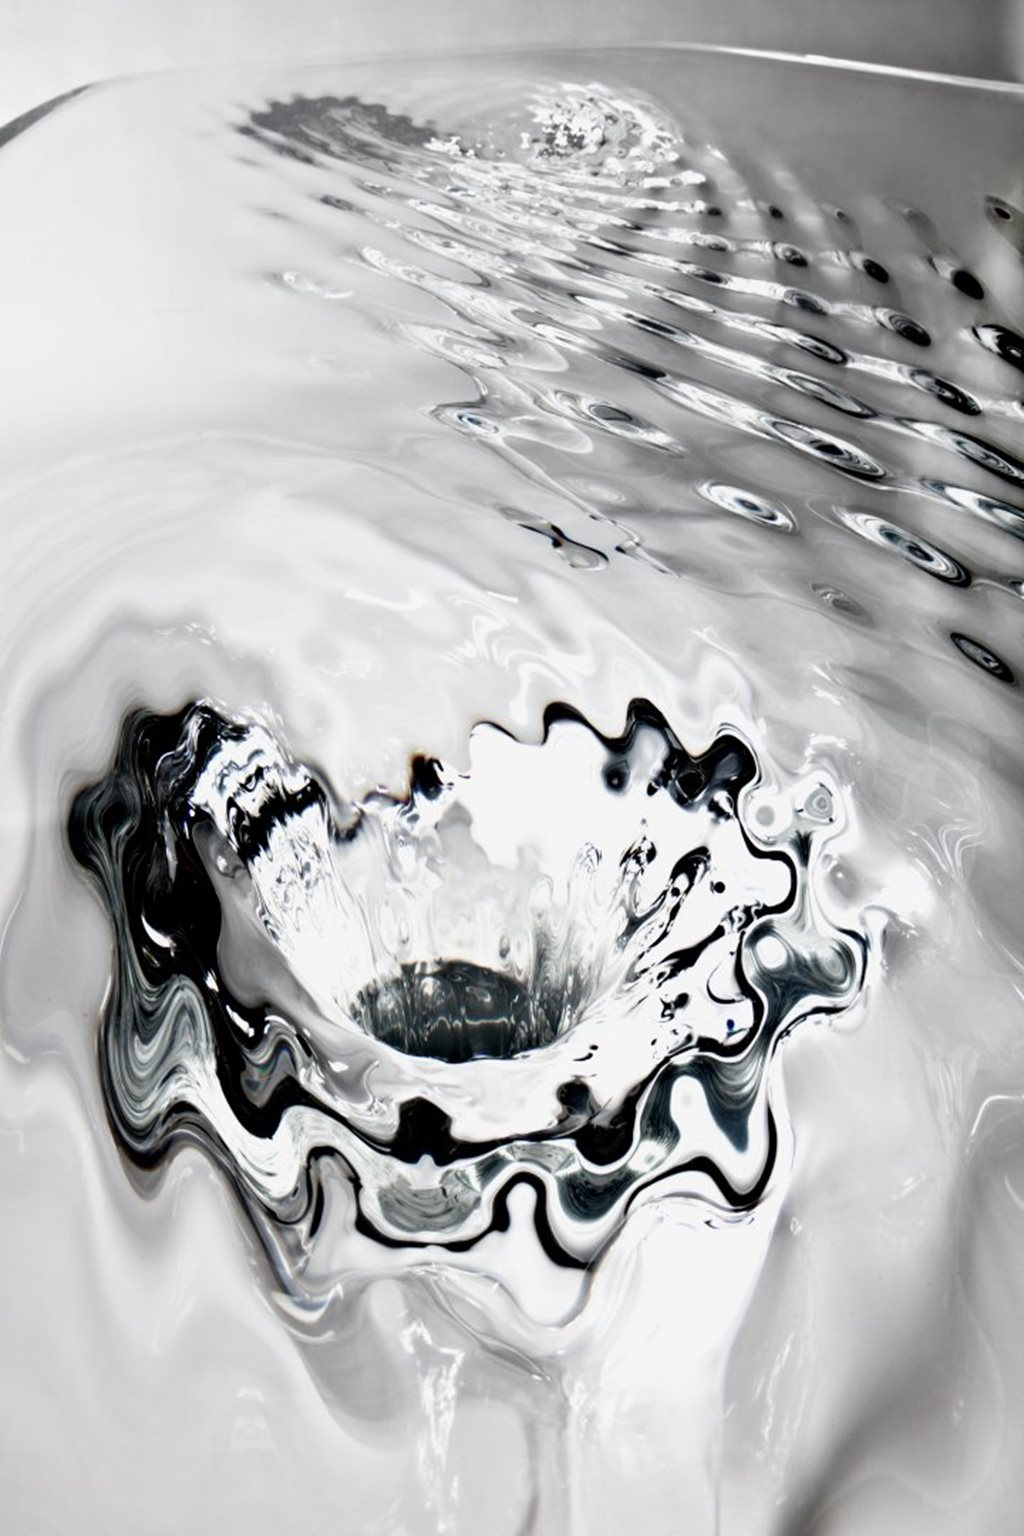 Zaha Hadid demonstrated amazing features of acryl at